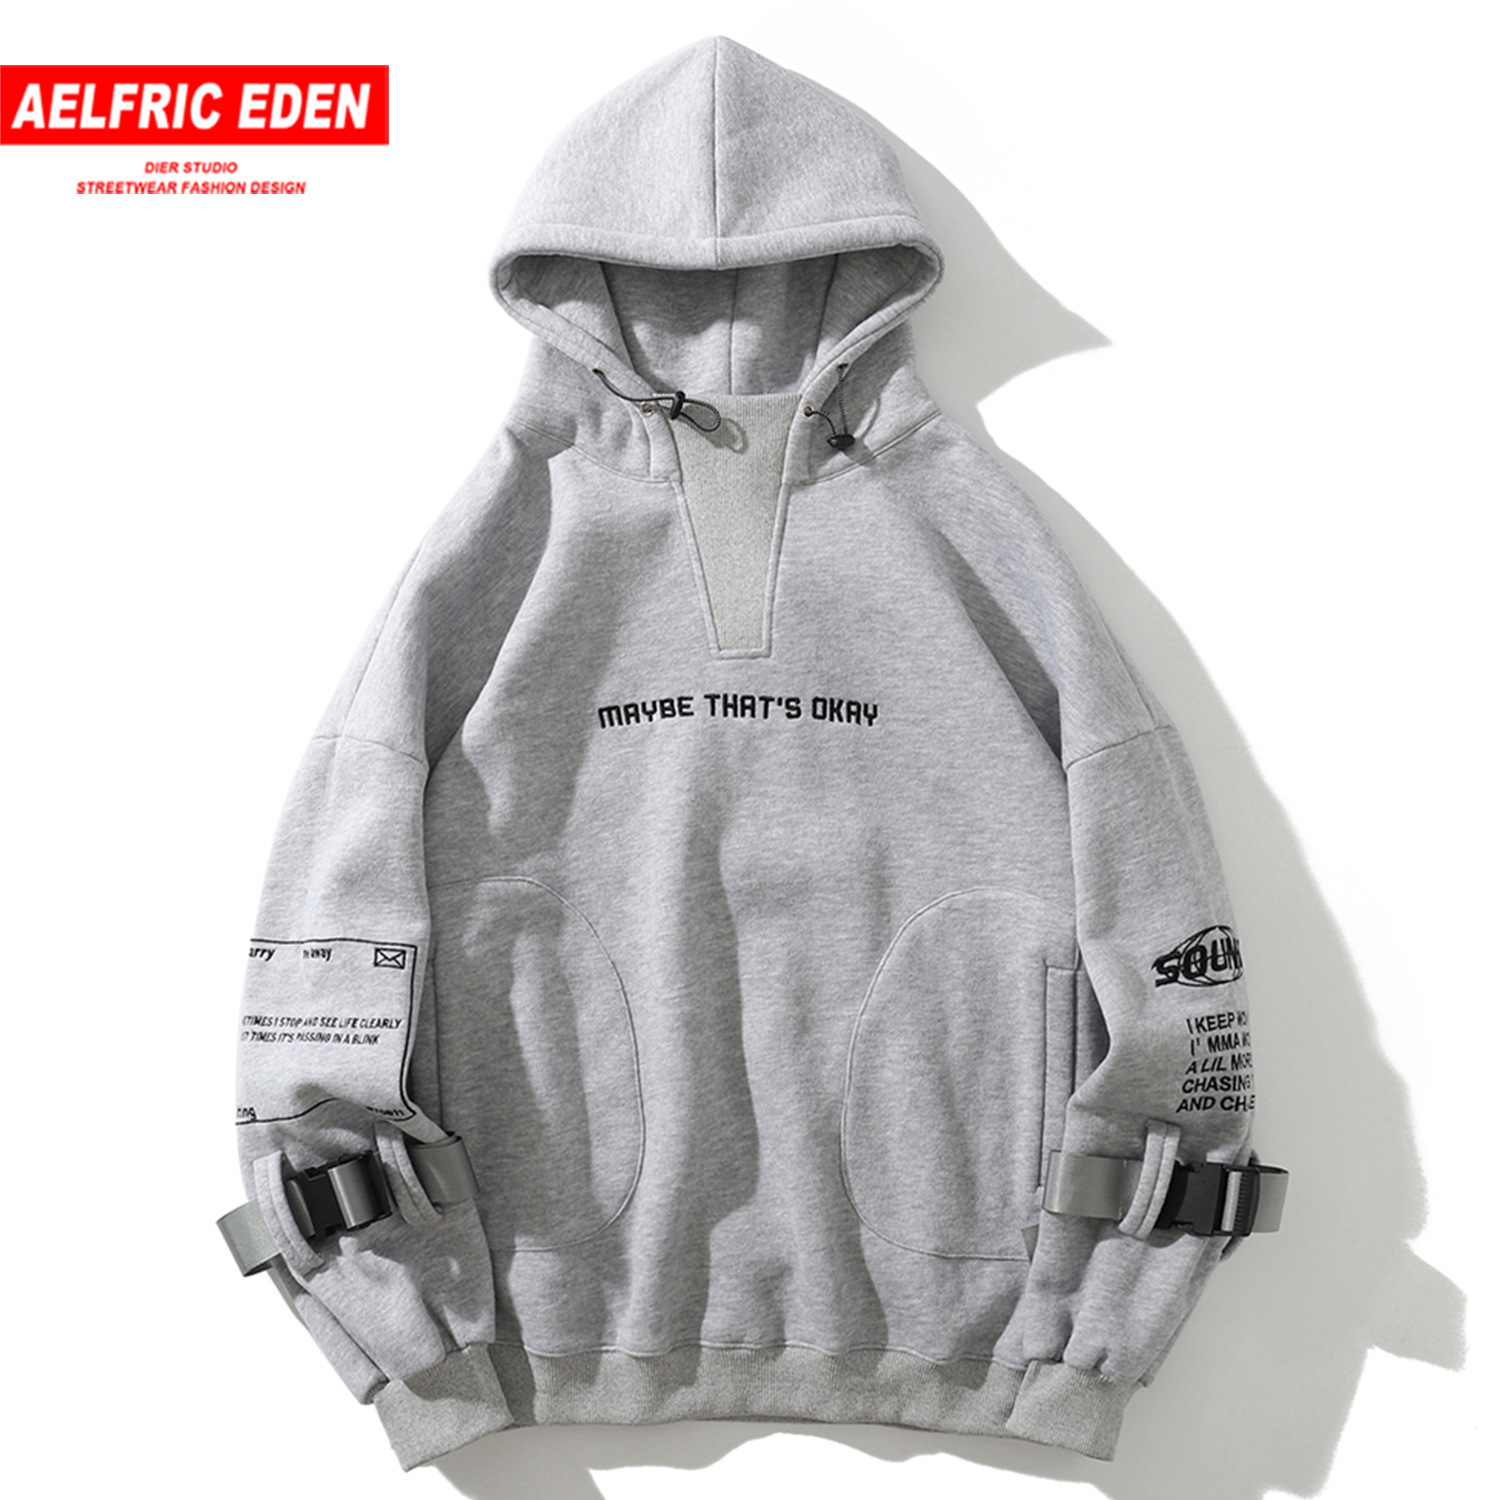 Aelfric Eden Hip Hop Hoodies Sweatshirts 2020 Letter Embroideried Harajuku Casual Cotton Pullover Streetwear Hoodies Men Women